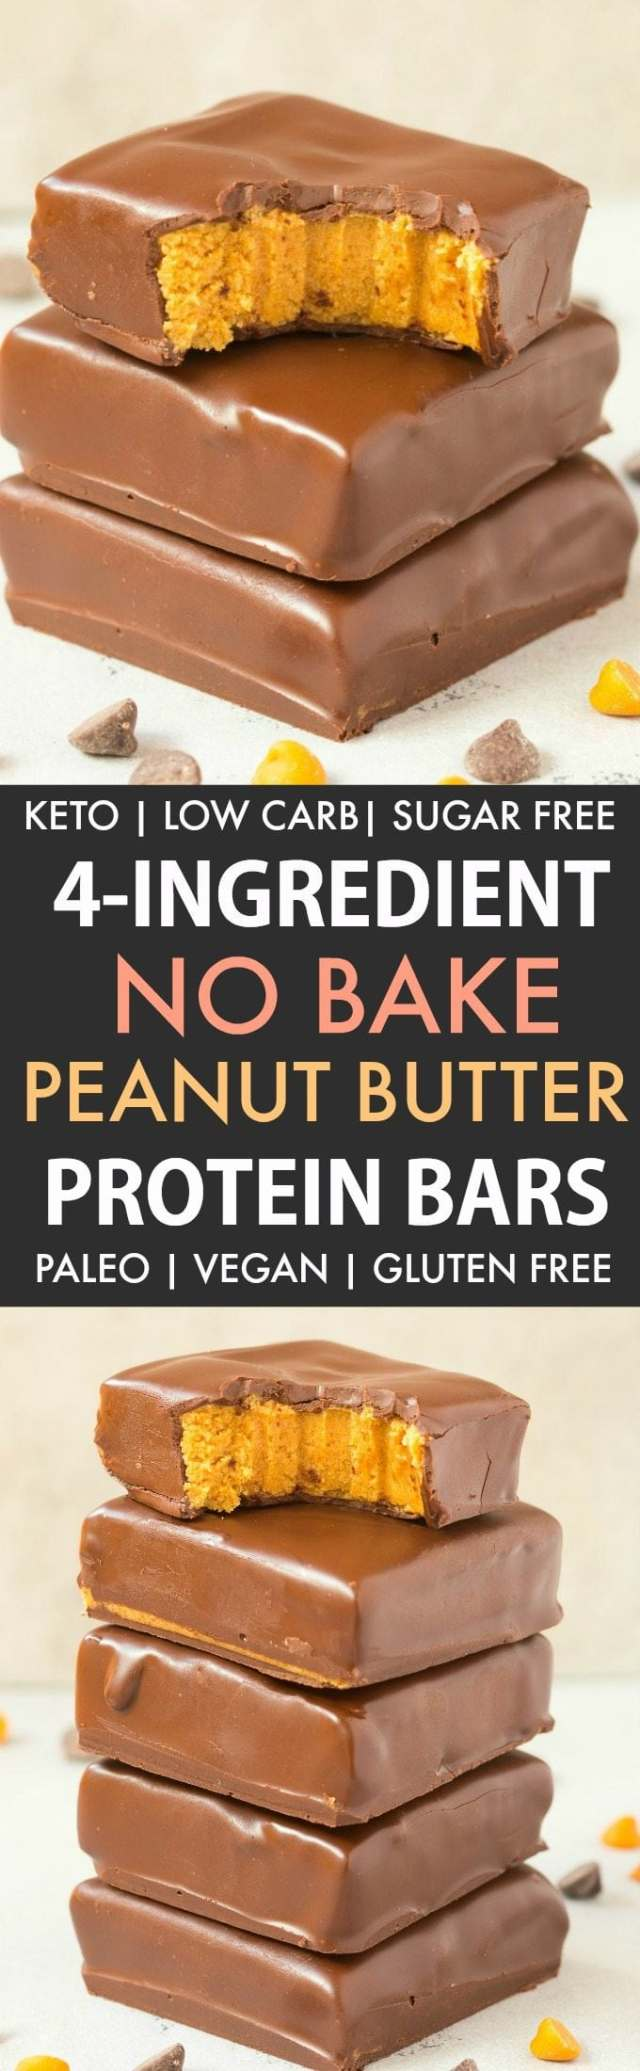 4-Ingredient No Bake Peanut Butter Protein Bars (Paleo, Vegan, Keto, Sugar Free, Gluten Free)- Easy, healthy and low carb bars using just 4 ingredients and needing 5 minutes- They taste like Reese's peanut butter cups and better than store bought! #keto #peanutbutter #chocolate #healthy #nobake | Recipe on thebigmansworld.com